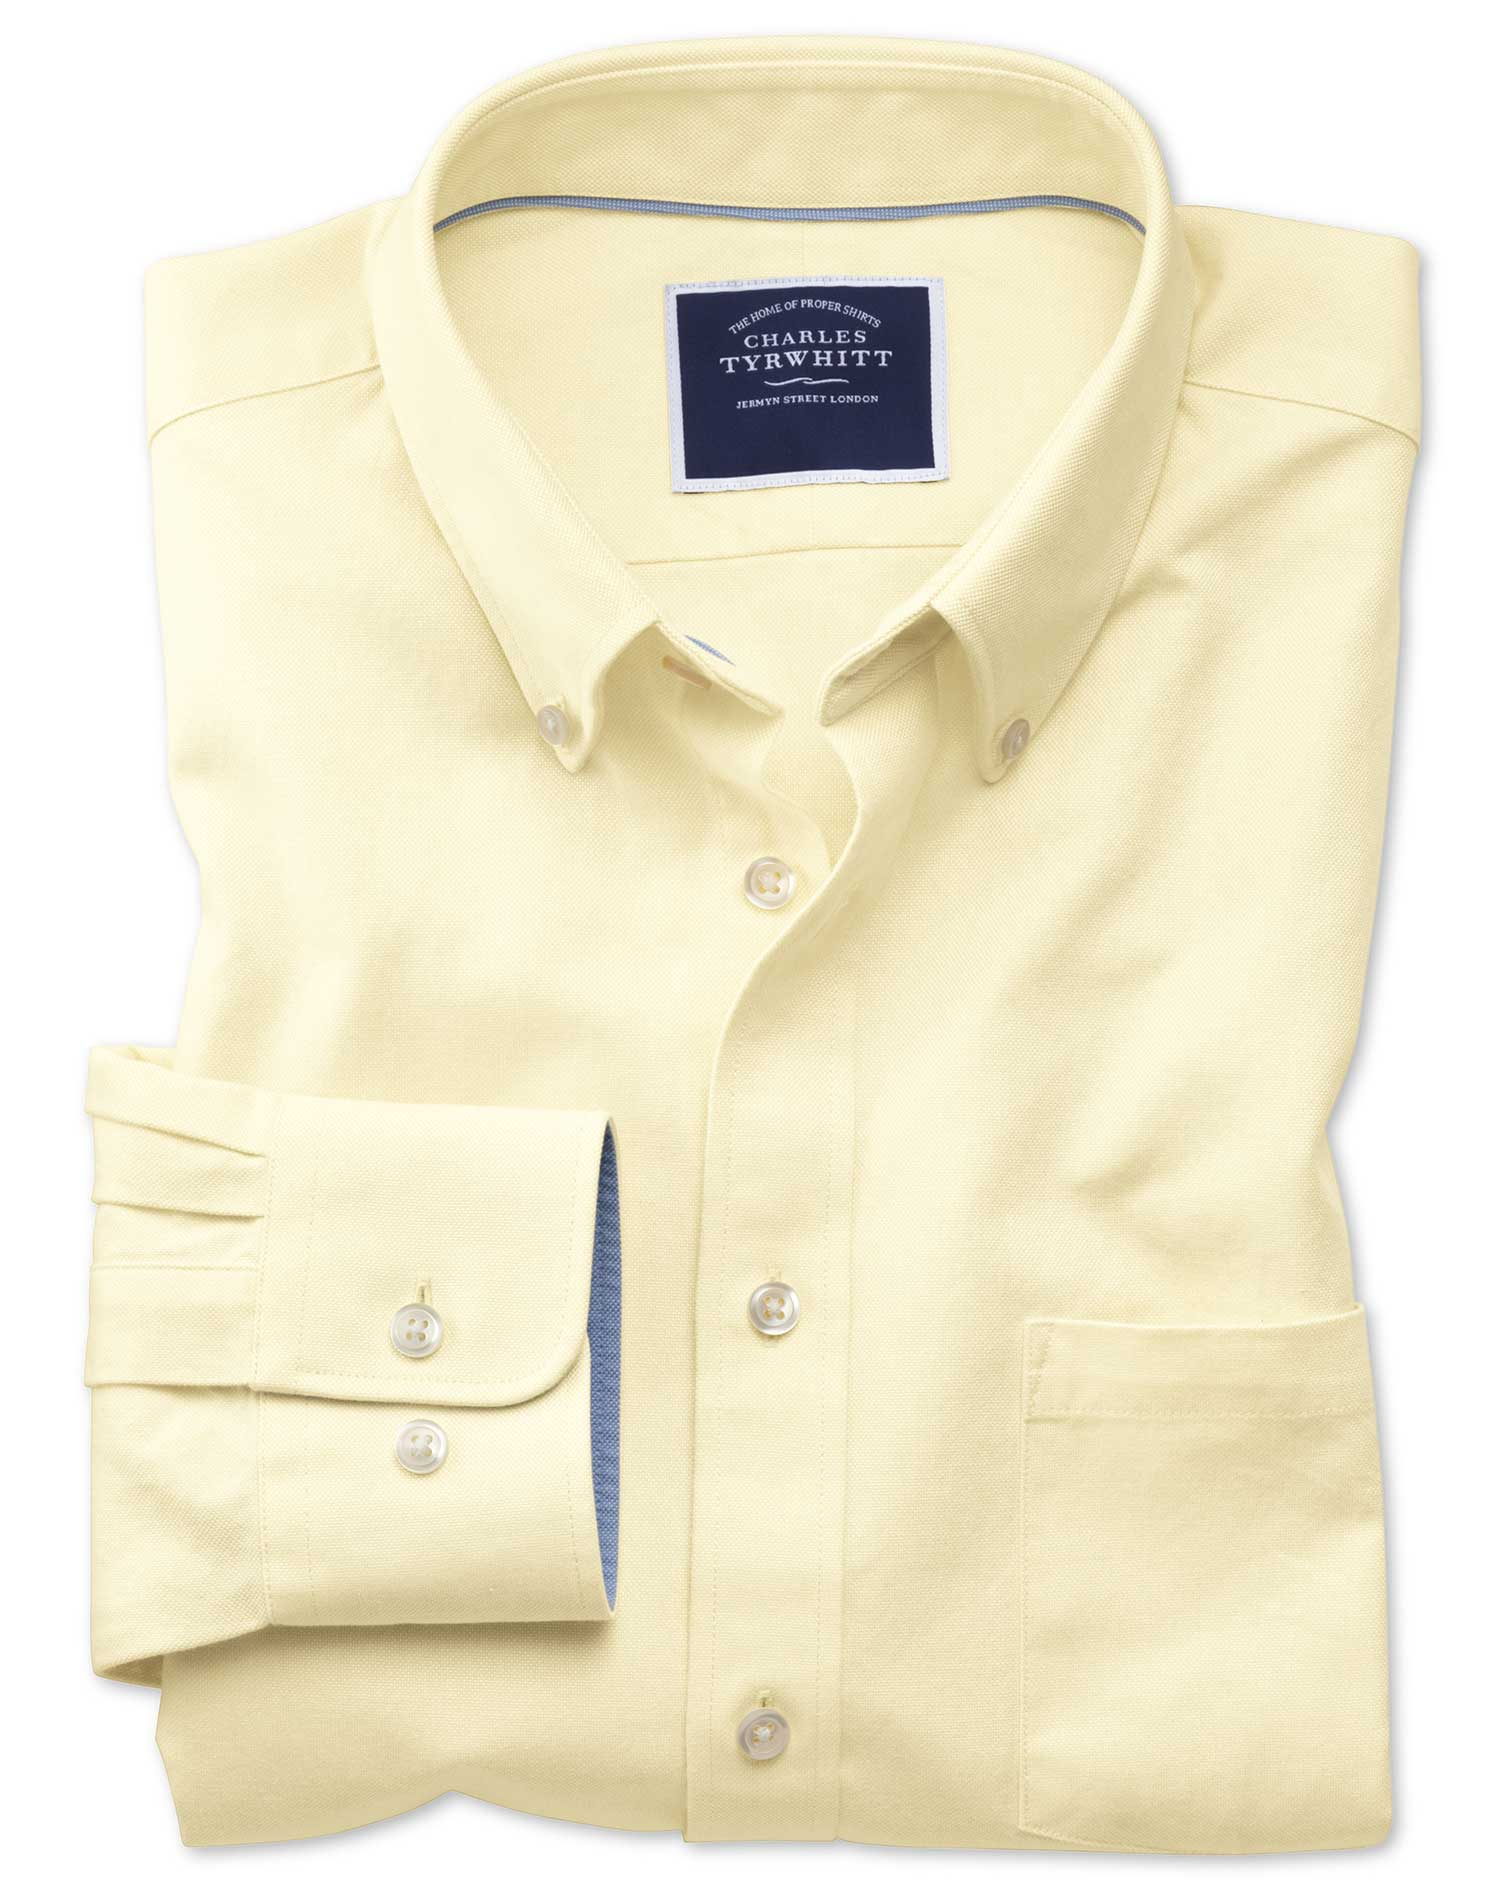 Slim Fit Button-Down Washed Oxford Plain Light Yellow Cotton Shirt Single Cuff Size Small by Charles